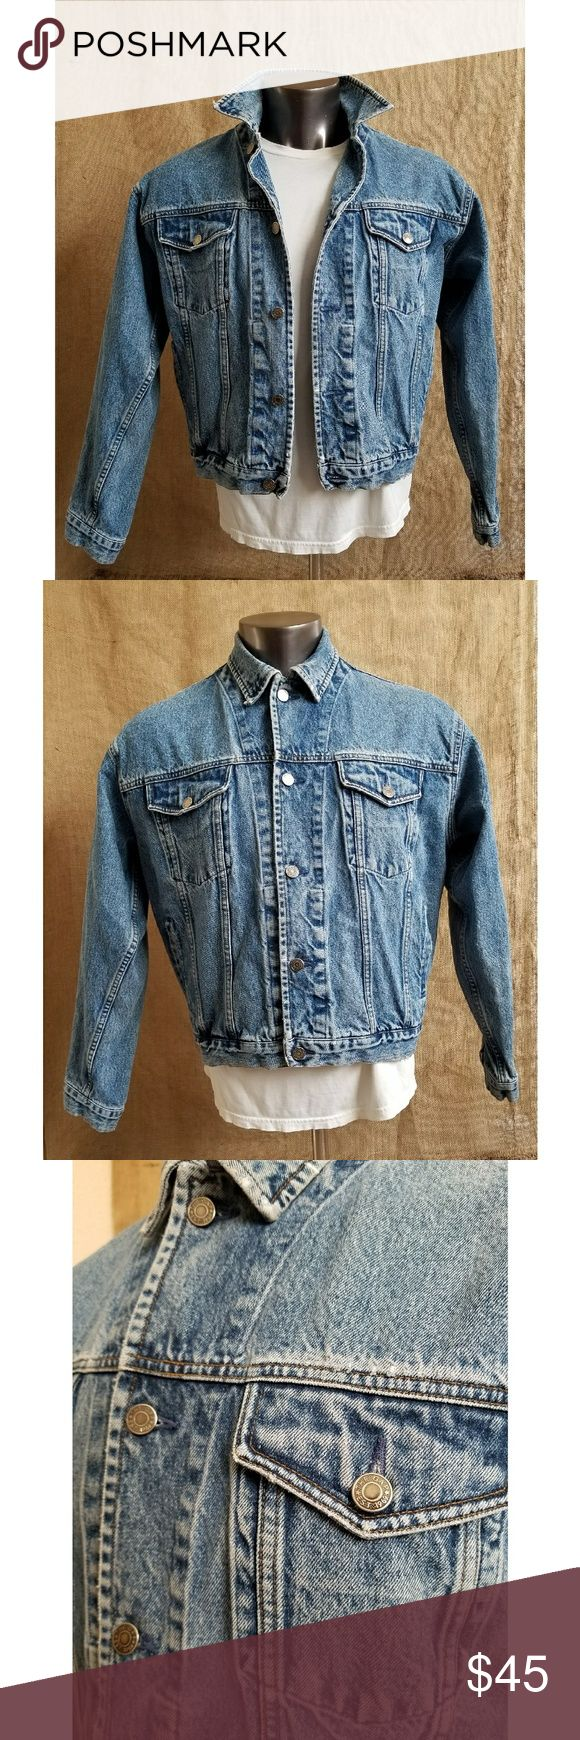 "Vintage 90's GAP Denim Jean Jacket Classic GAP Jean Jacket  Light faded denim blue Men's size medium  Measurements: Armpit to armpit: 24.5"" Length: 25"" Sleeve: 23"" Great condition  Clean and well maintained GAP Jackets & Coats"